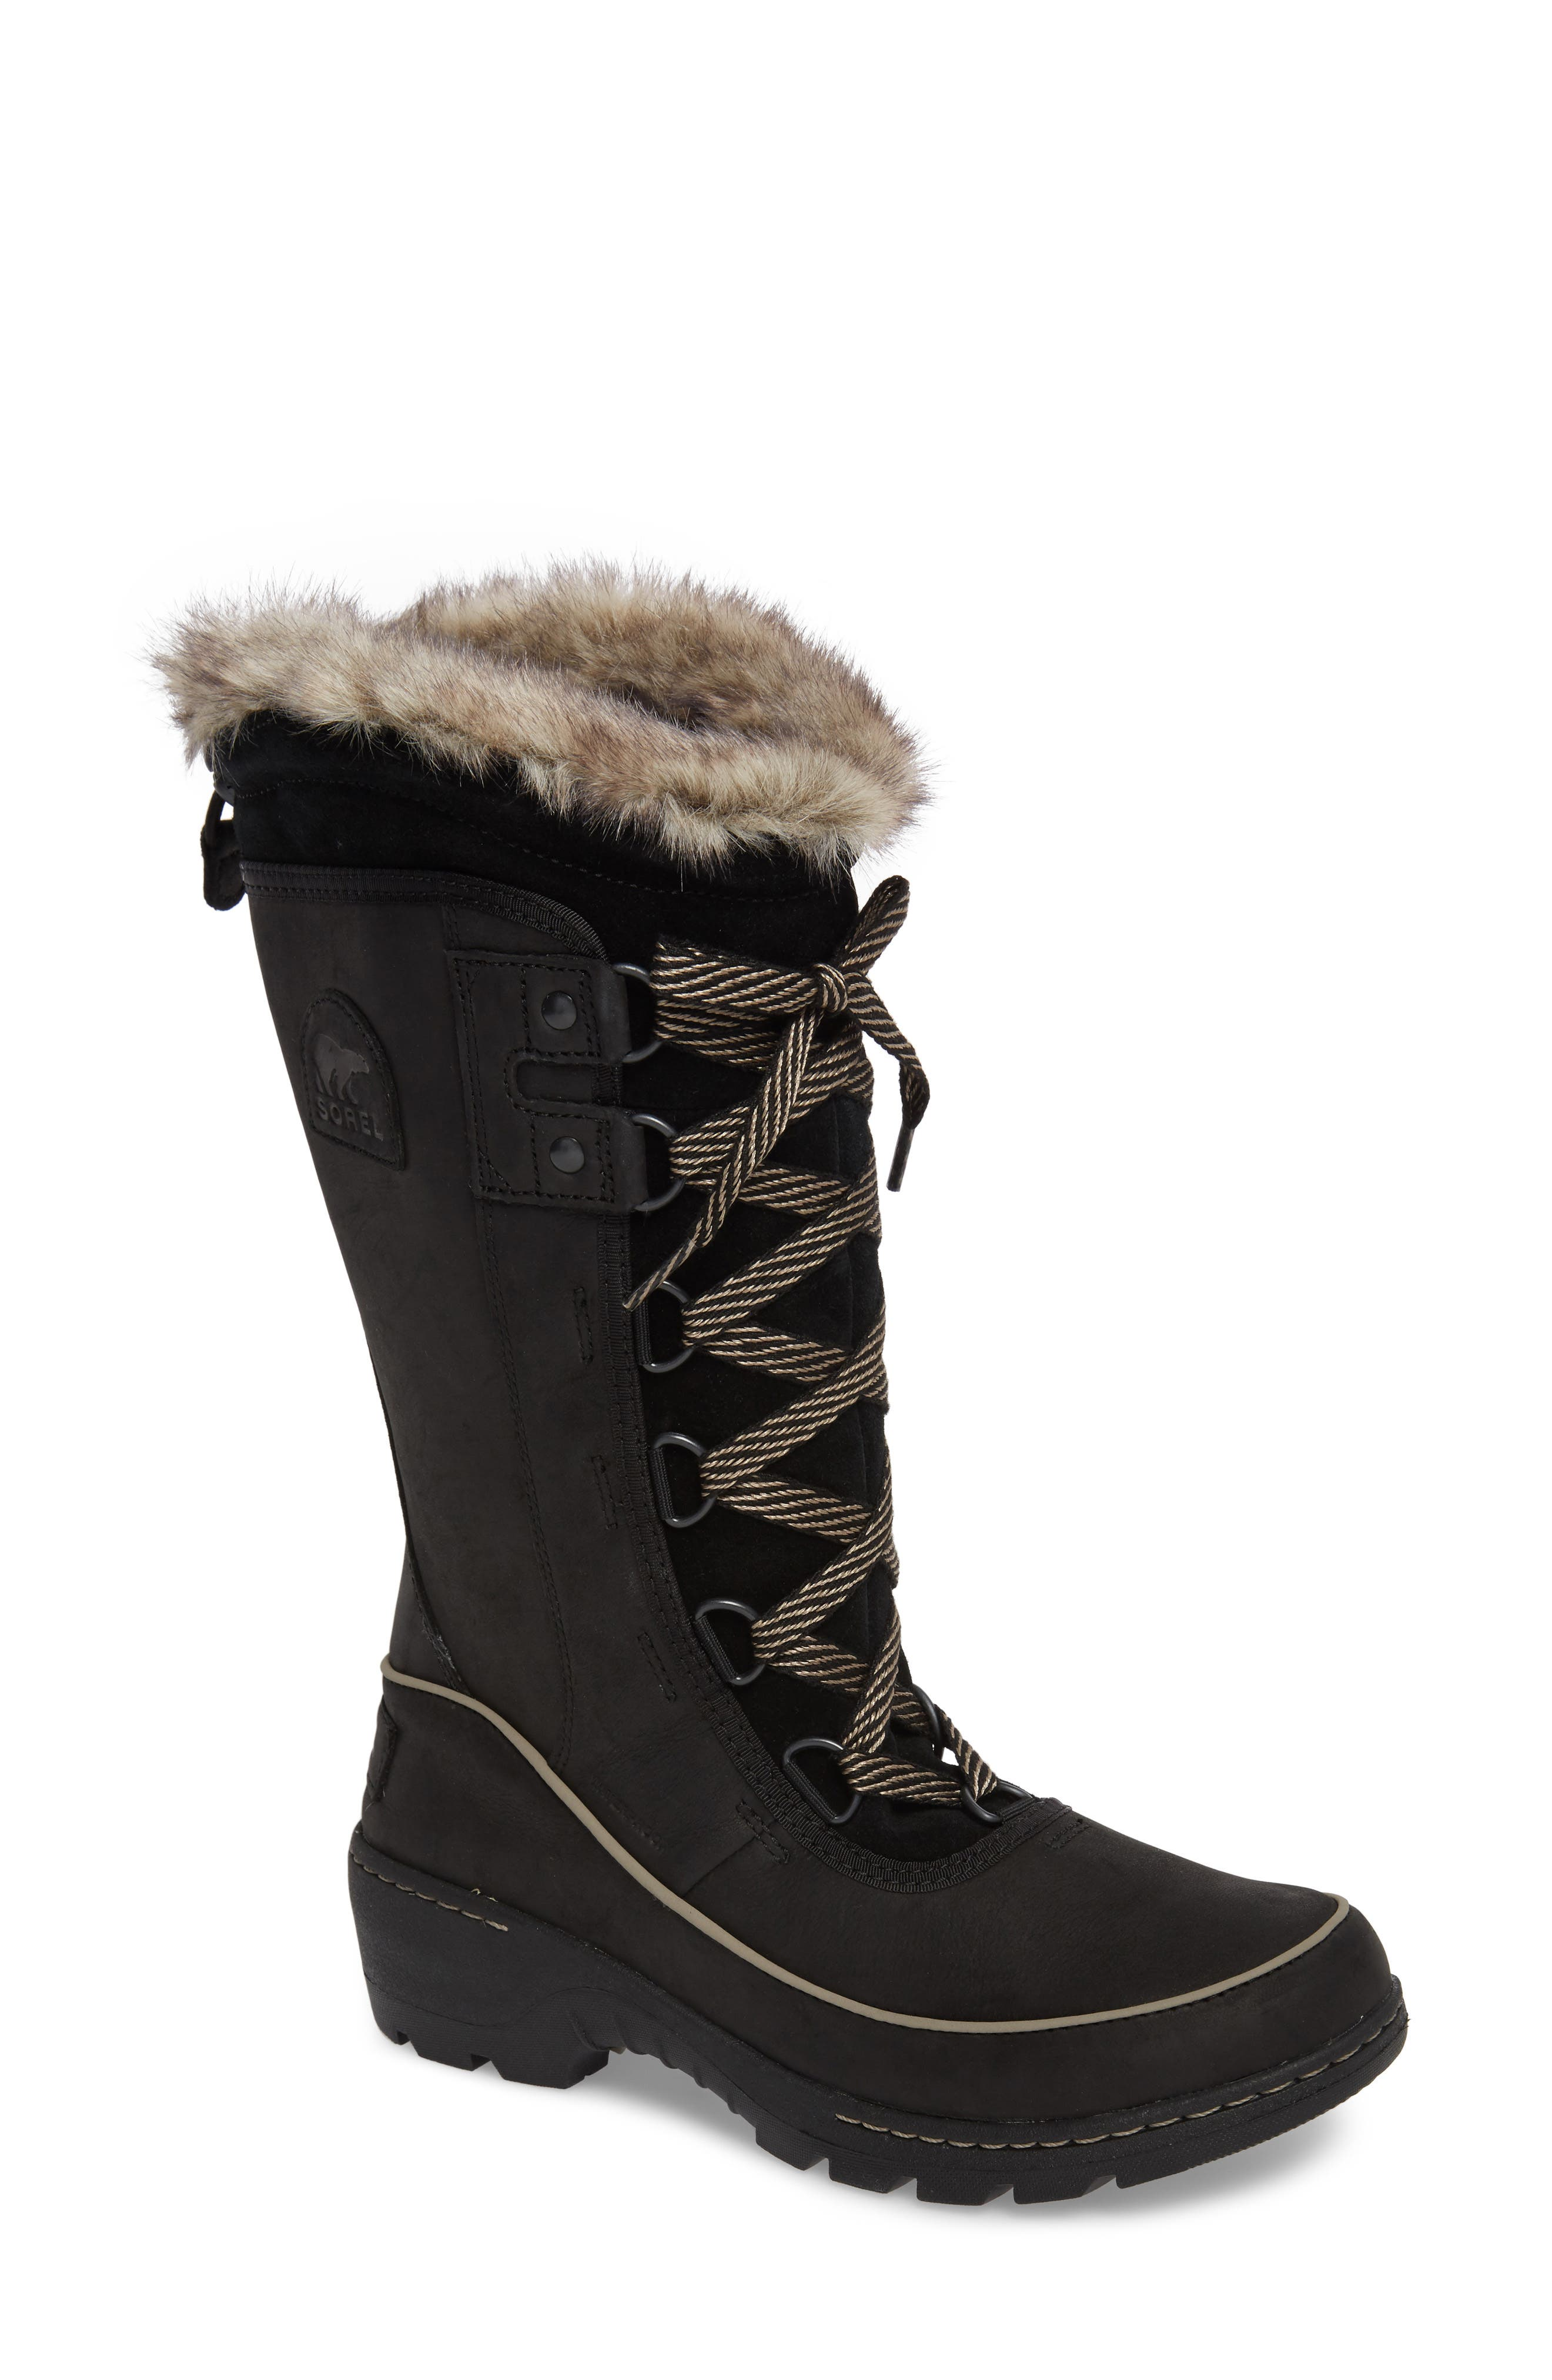 Alternate Image 1 Selected - SOREL Tivoli II Insulated Winter Boot with Faux Fur Trim (Women)